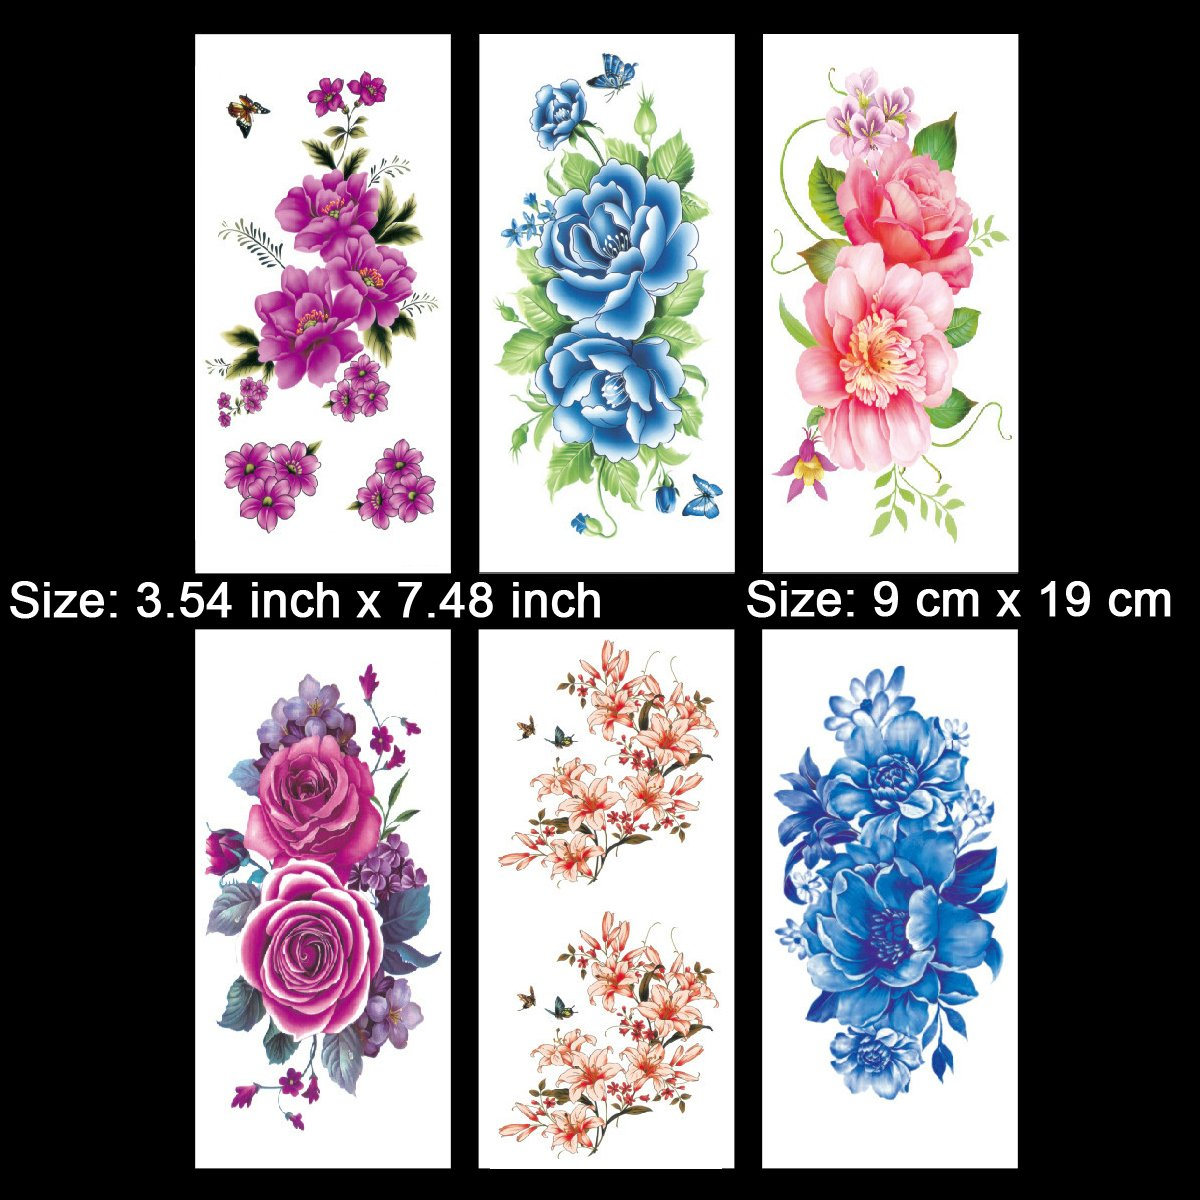 Kotbs 6 Sheets Floral Temporary Tattoo - Over 30+ Tattoos - Sexy Tattoo Sticker for Women & Girl Fake Tattoo (Chrysanthemum, Rose, Peony) by Kotbs (Image #2)